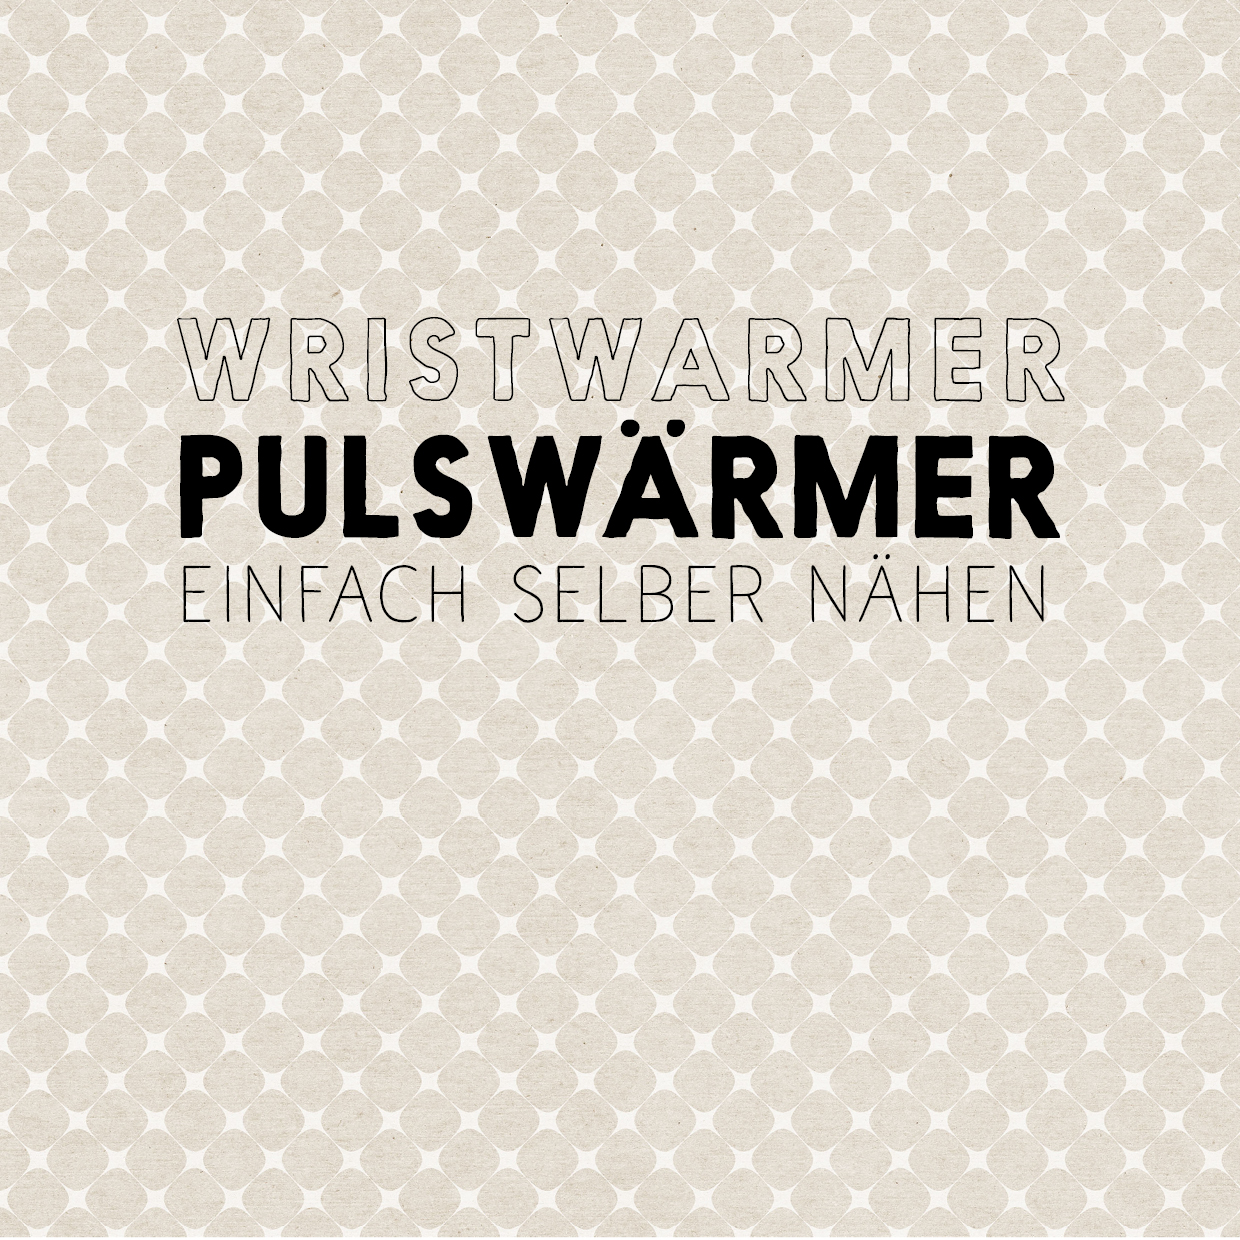 diy pulsw rmer diy wristwarmers sonst noch was der blog. Black Bedroom Furniture Sets. Home Design Ideas